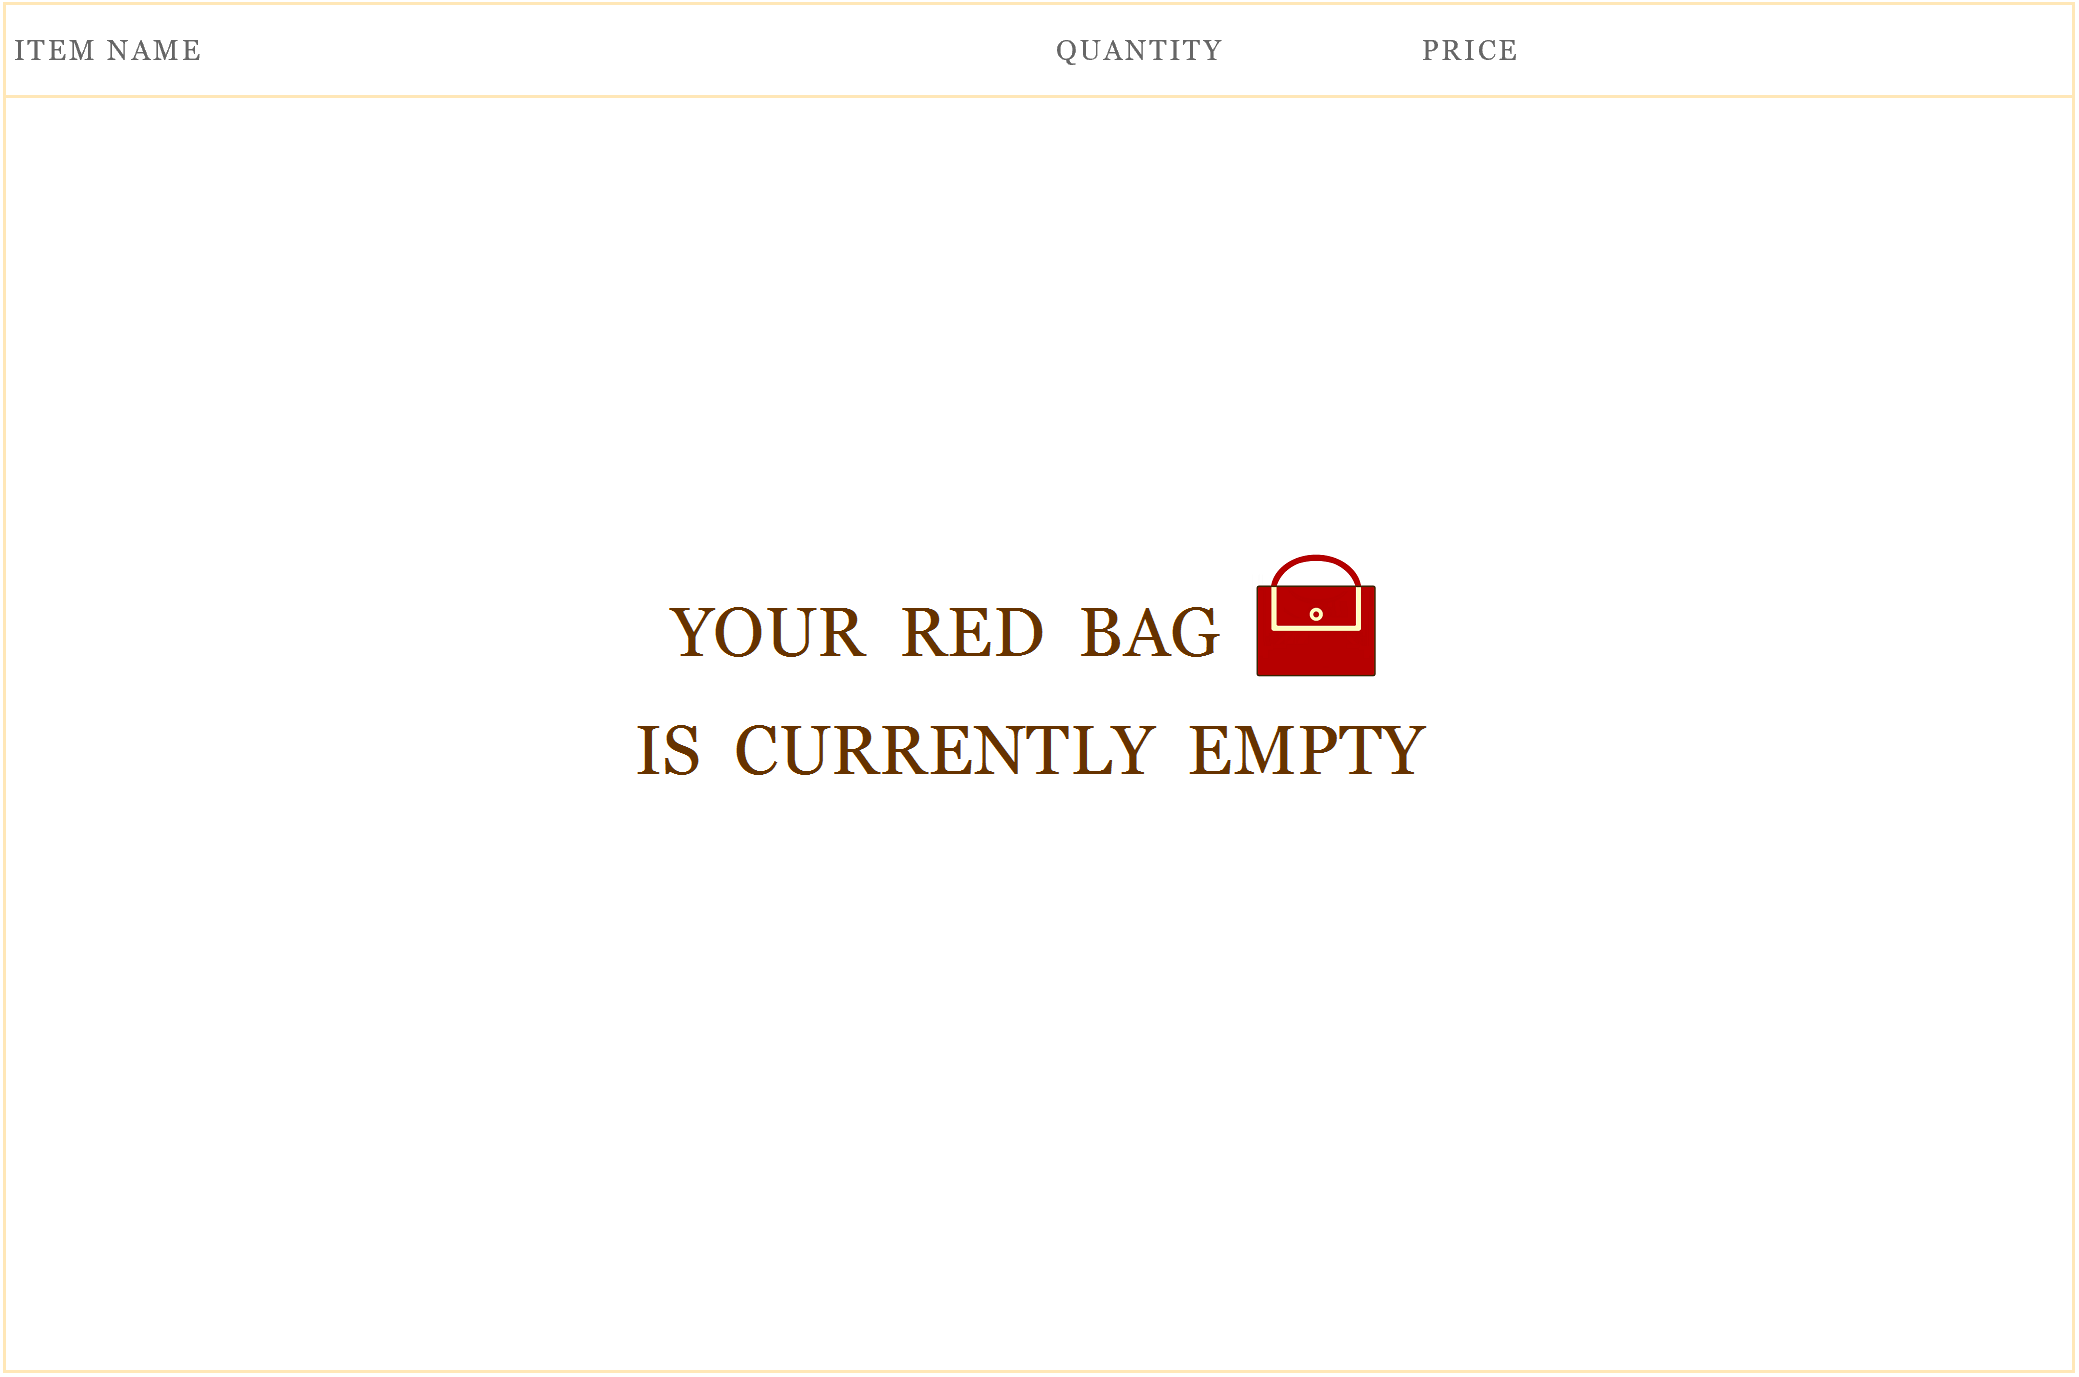 https://www.redkarawana.com/wp-content/uploads/2016/07/0k-ENG-Red-Bag-Empty-Image.png